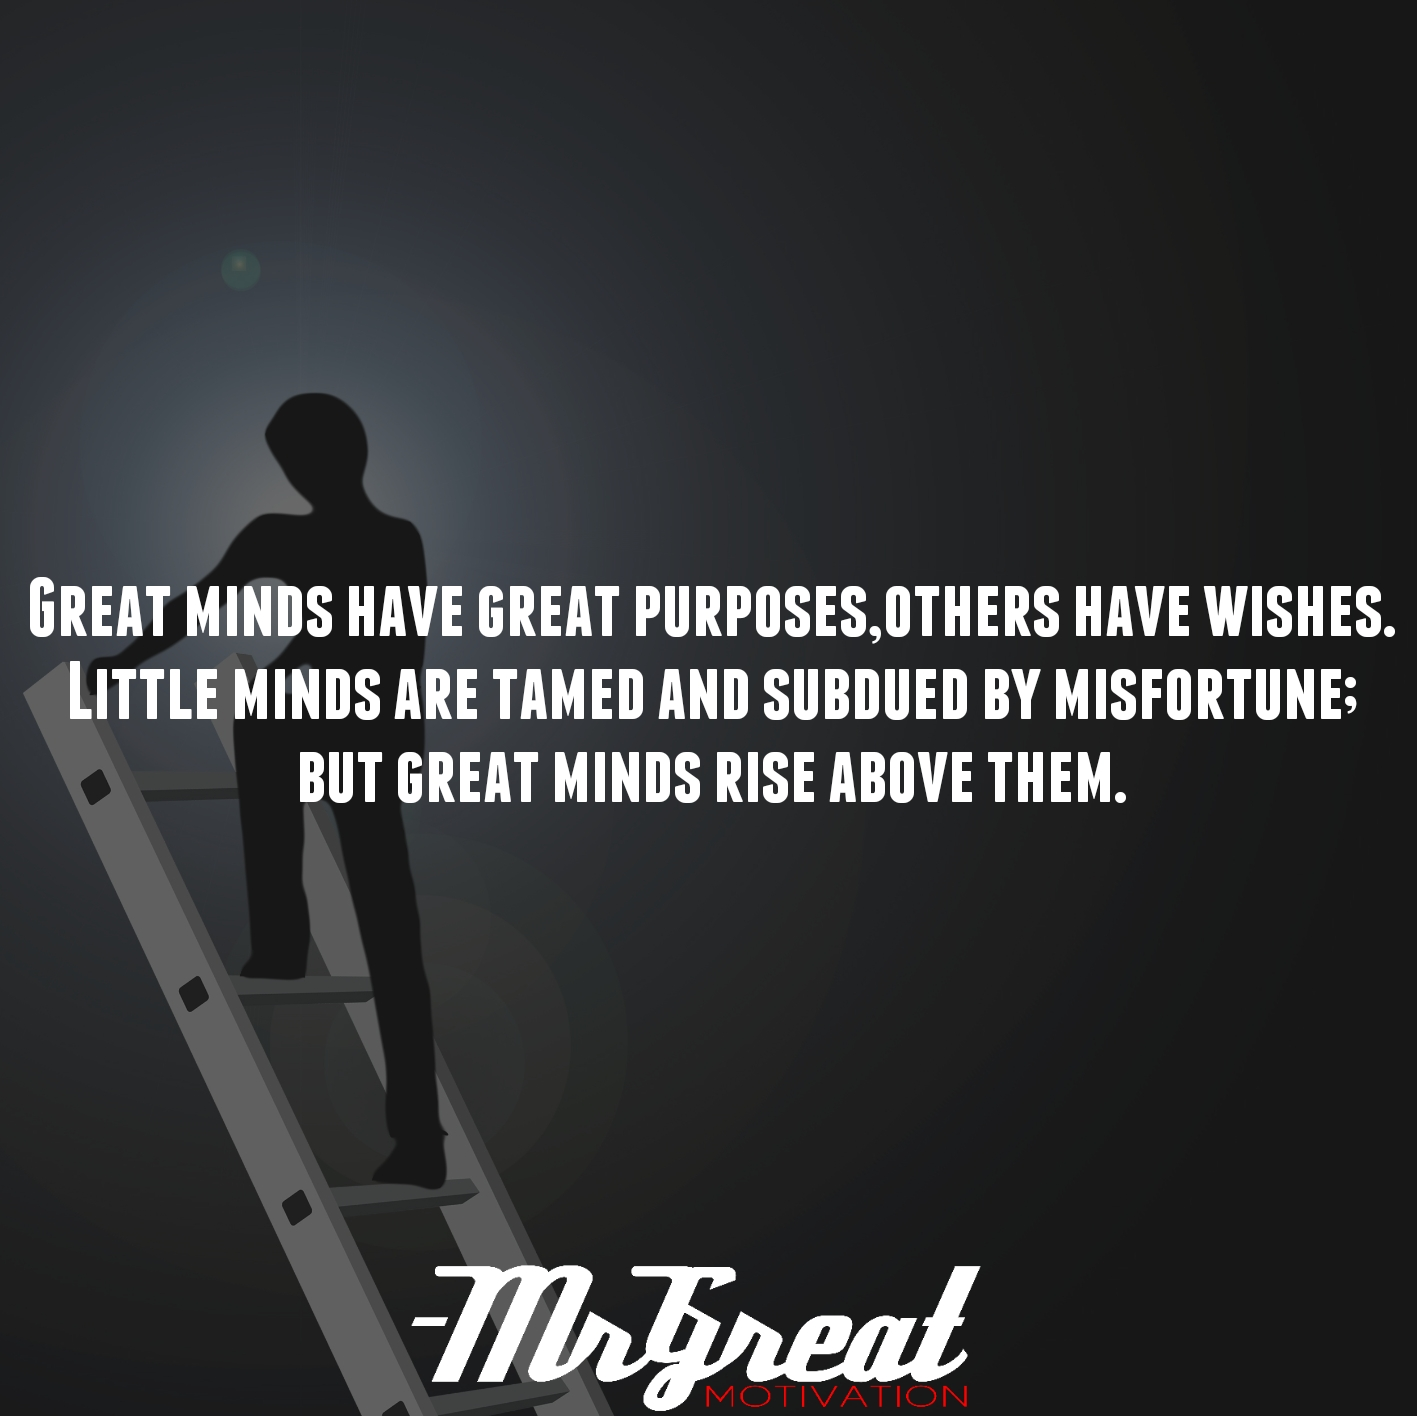 Great minds have great purposes, others have wishes. Little minds are tamed and subdued by misfortune; but great minds rise above them - Washington Irving